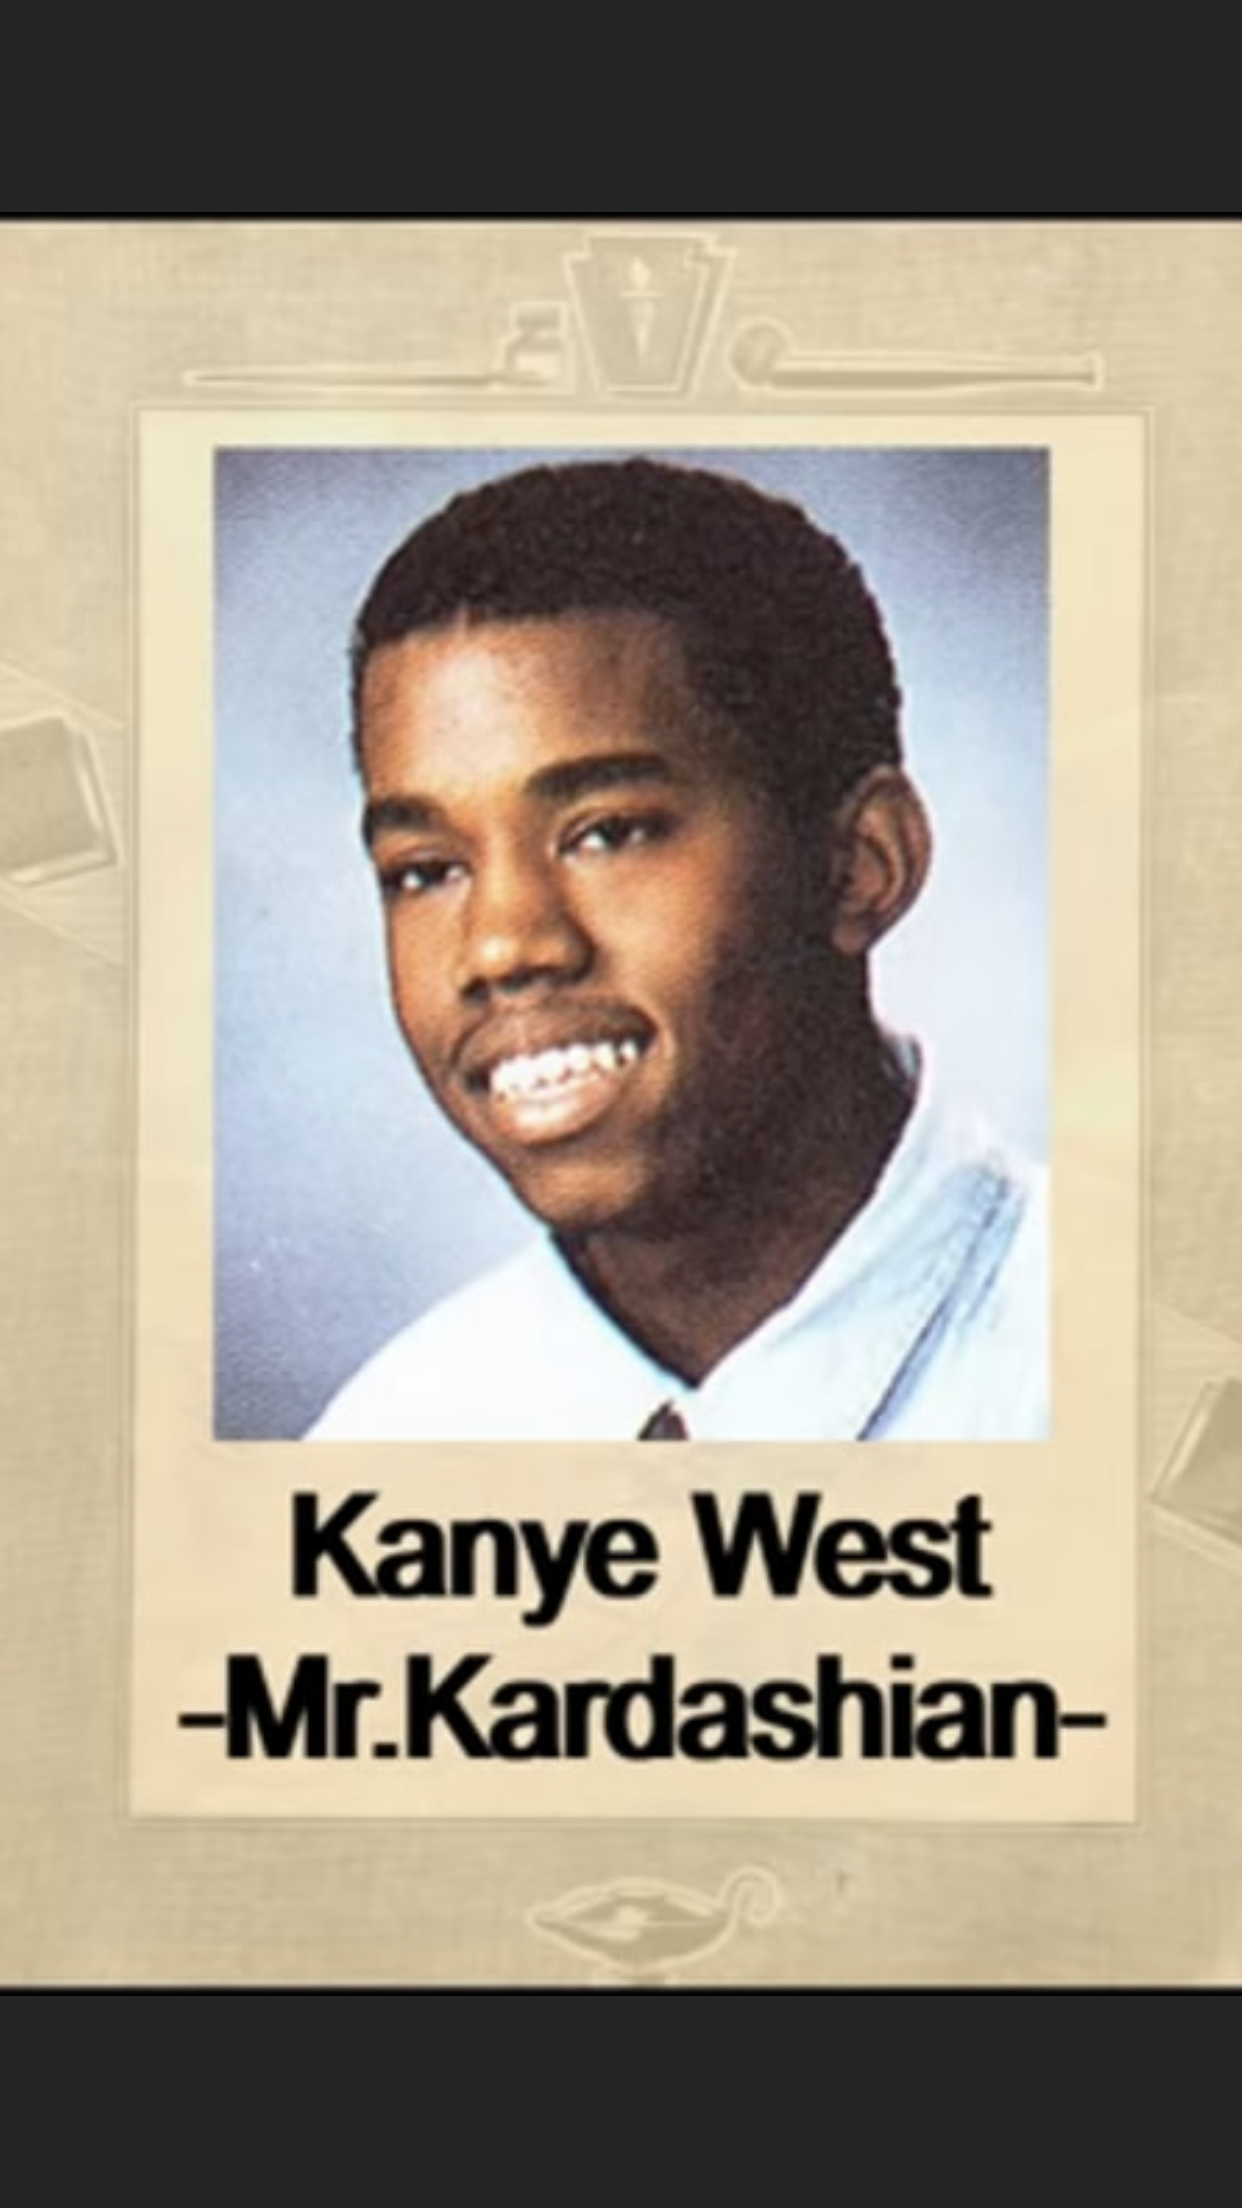 Pin By Kelly Phillips On Before They Were Famous In 2020 Kanye West Movie Posters Kanye